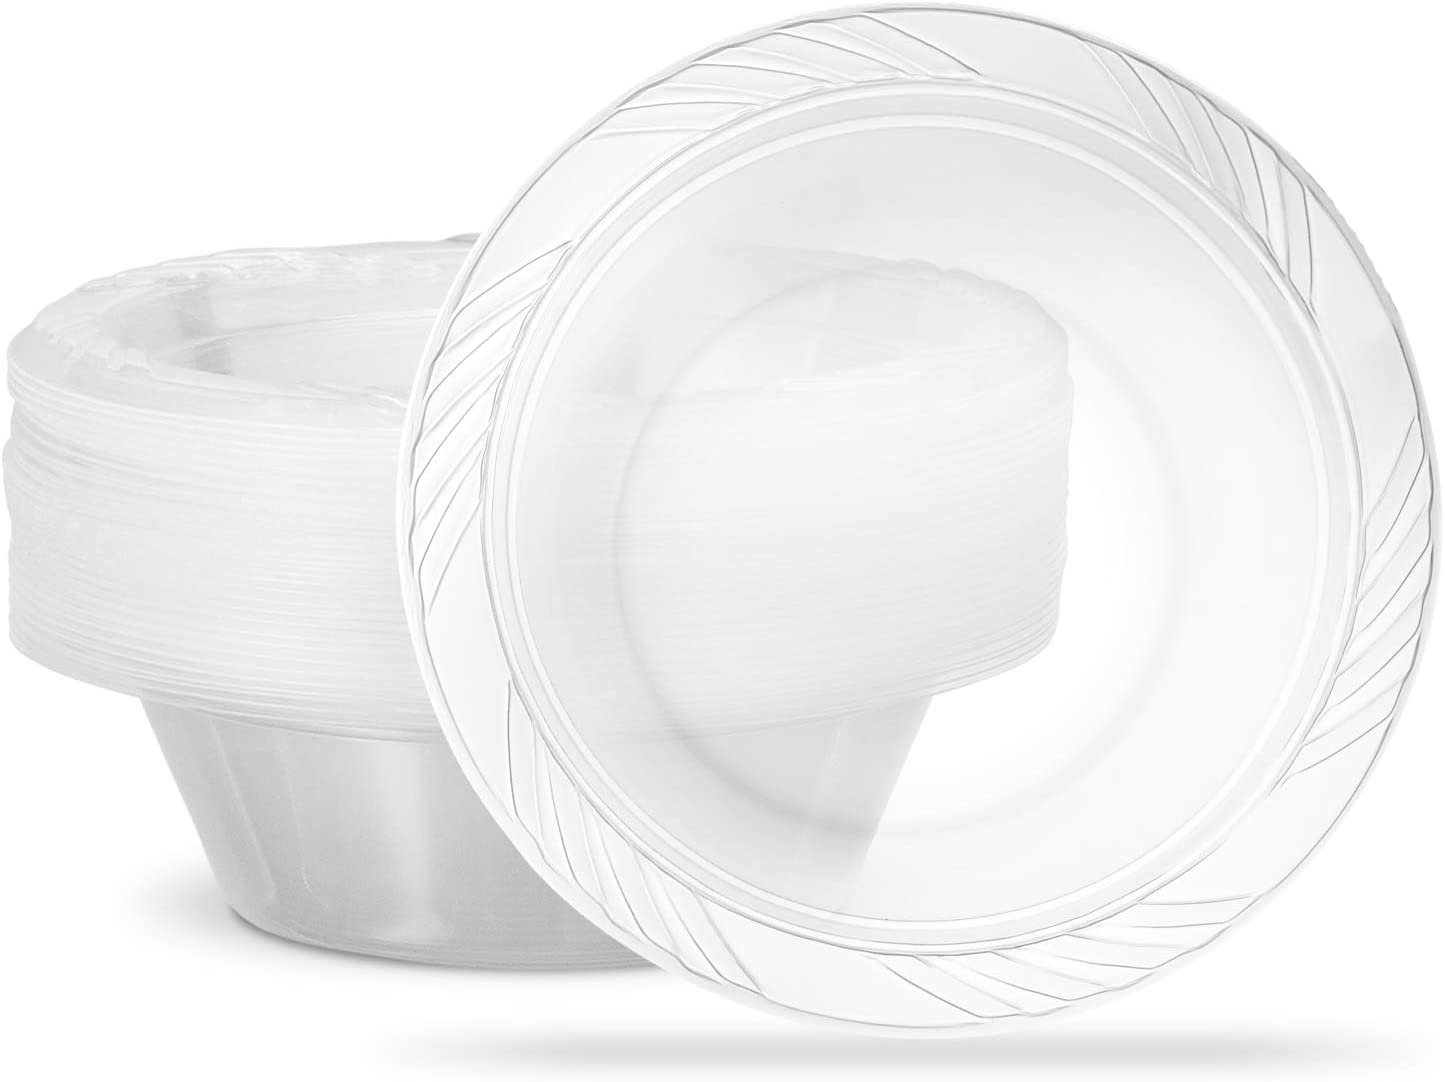 Plasticpro 5 ounce Premium Crystal Clear Disposable 5 ☆ popular Dess Max 72% OFF Plastic